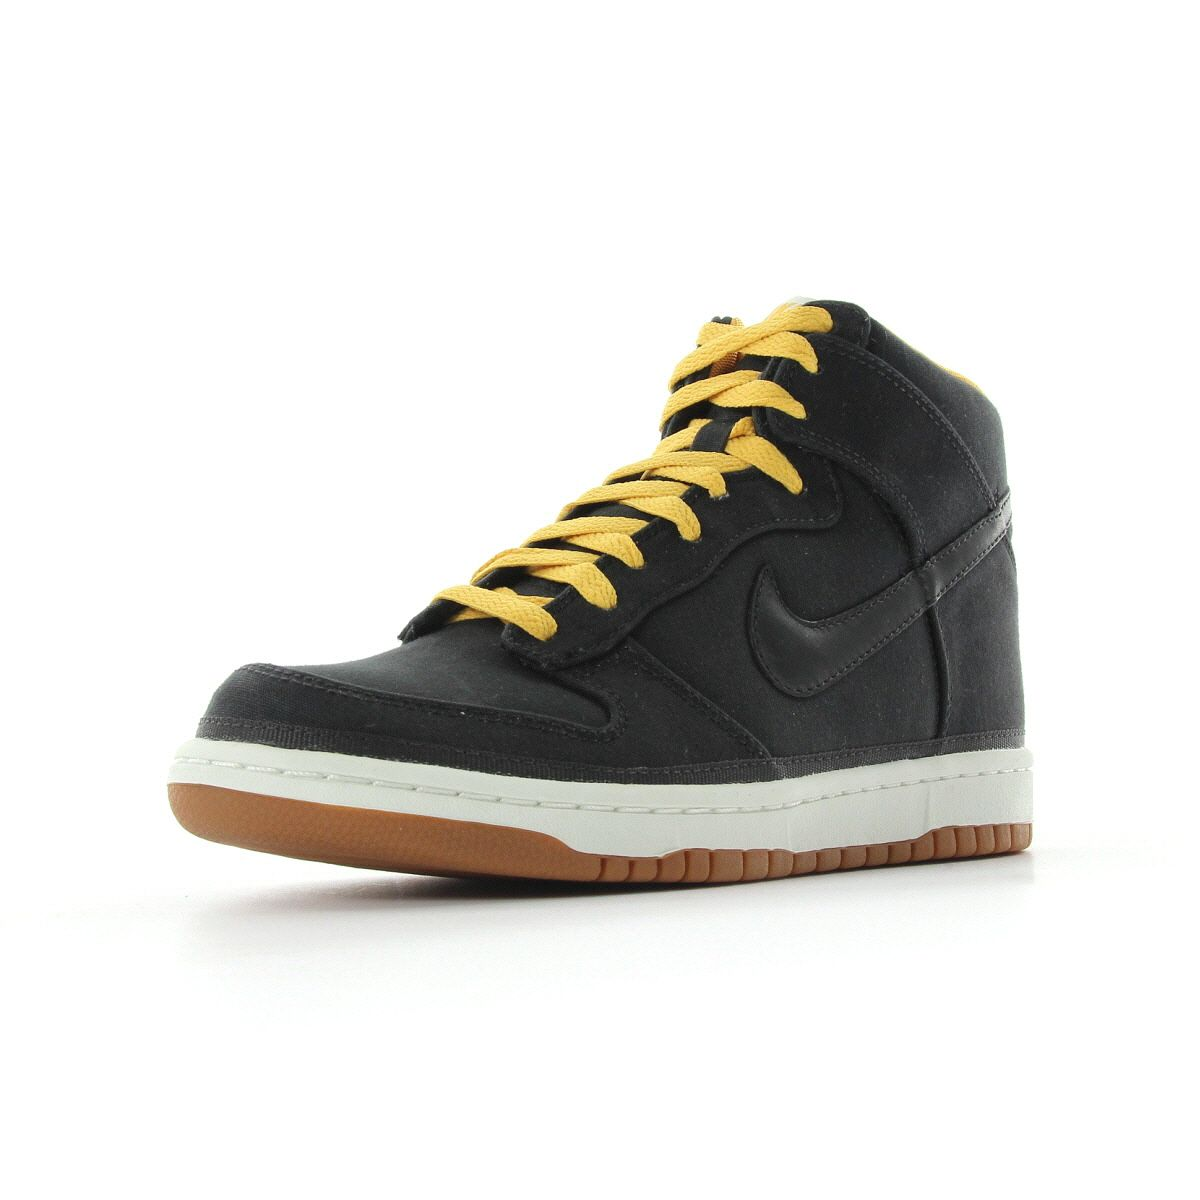 info for e016f 61126 Baskets Homme - Nike Dunk high premium